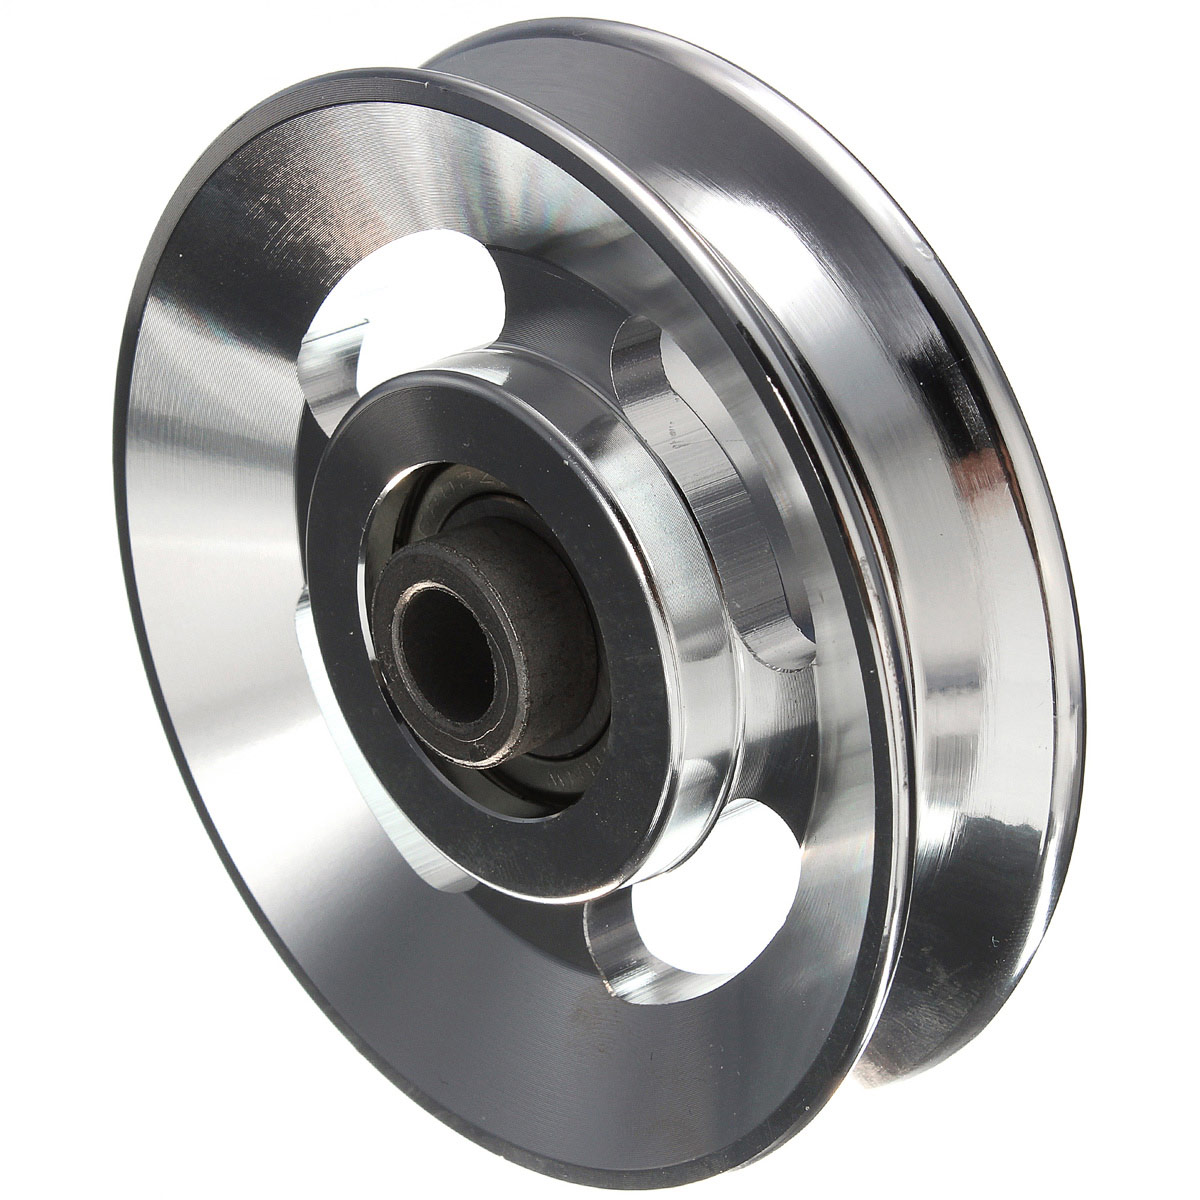 Fitness Equipment Parts: Universal 88mm Aluminum Bearing Pulley Wheel Cable Gym